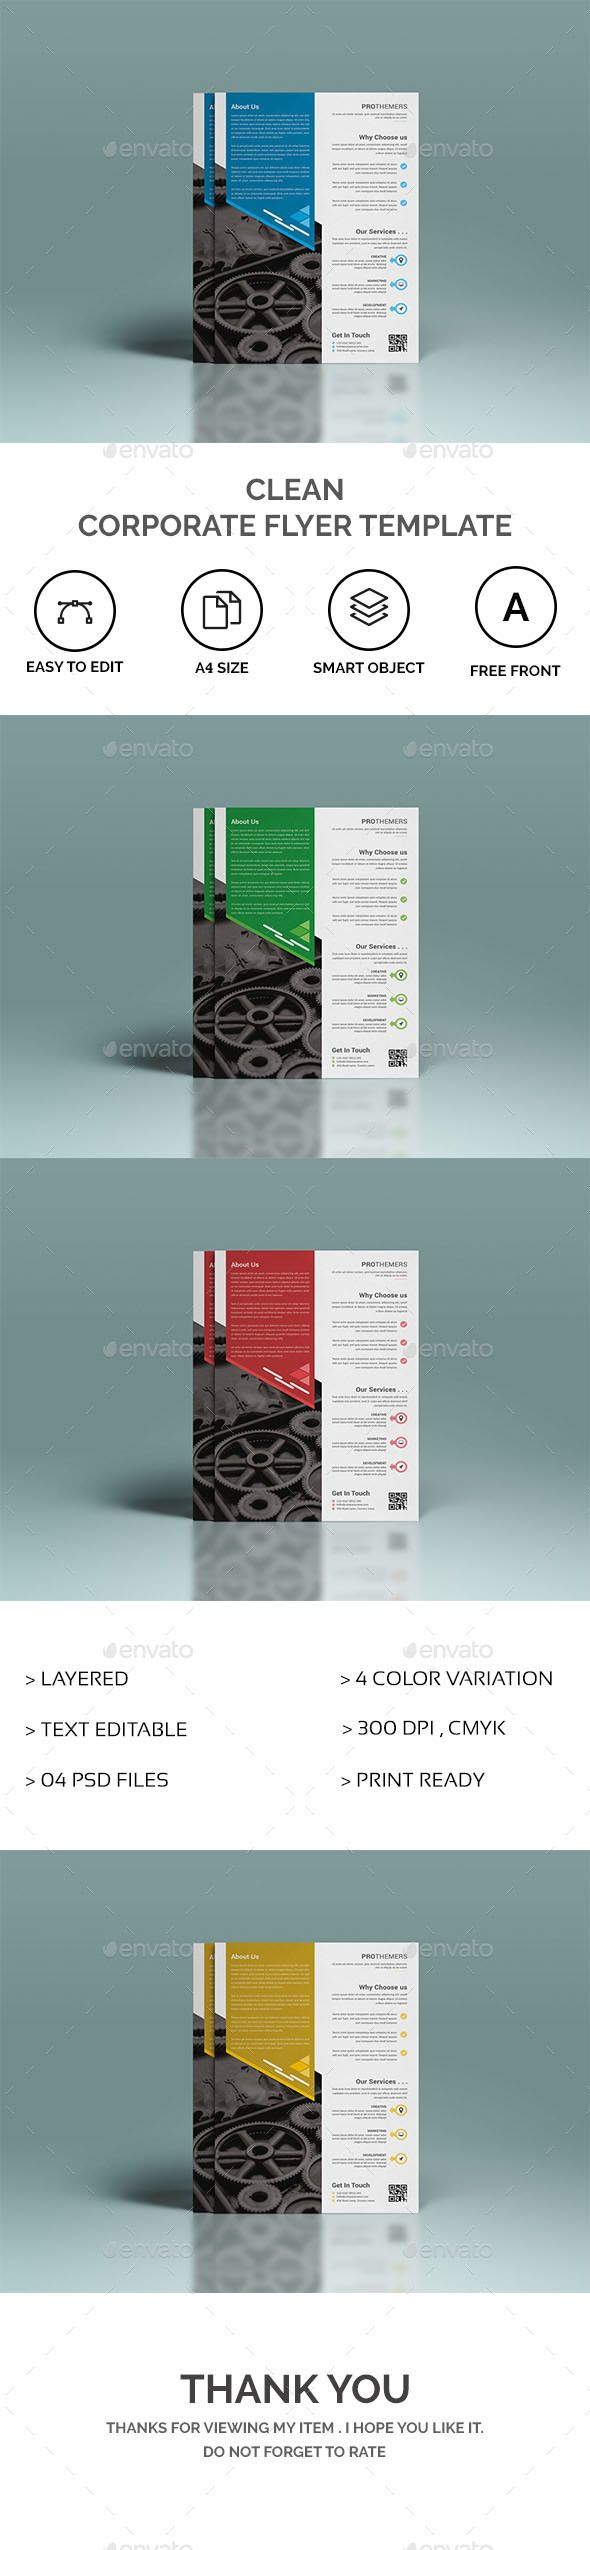 1000 ideas about flyer template on pinterest flyer design flyer layout and flyers. Black Bedroom Furniture Sets. Home Design Ideas